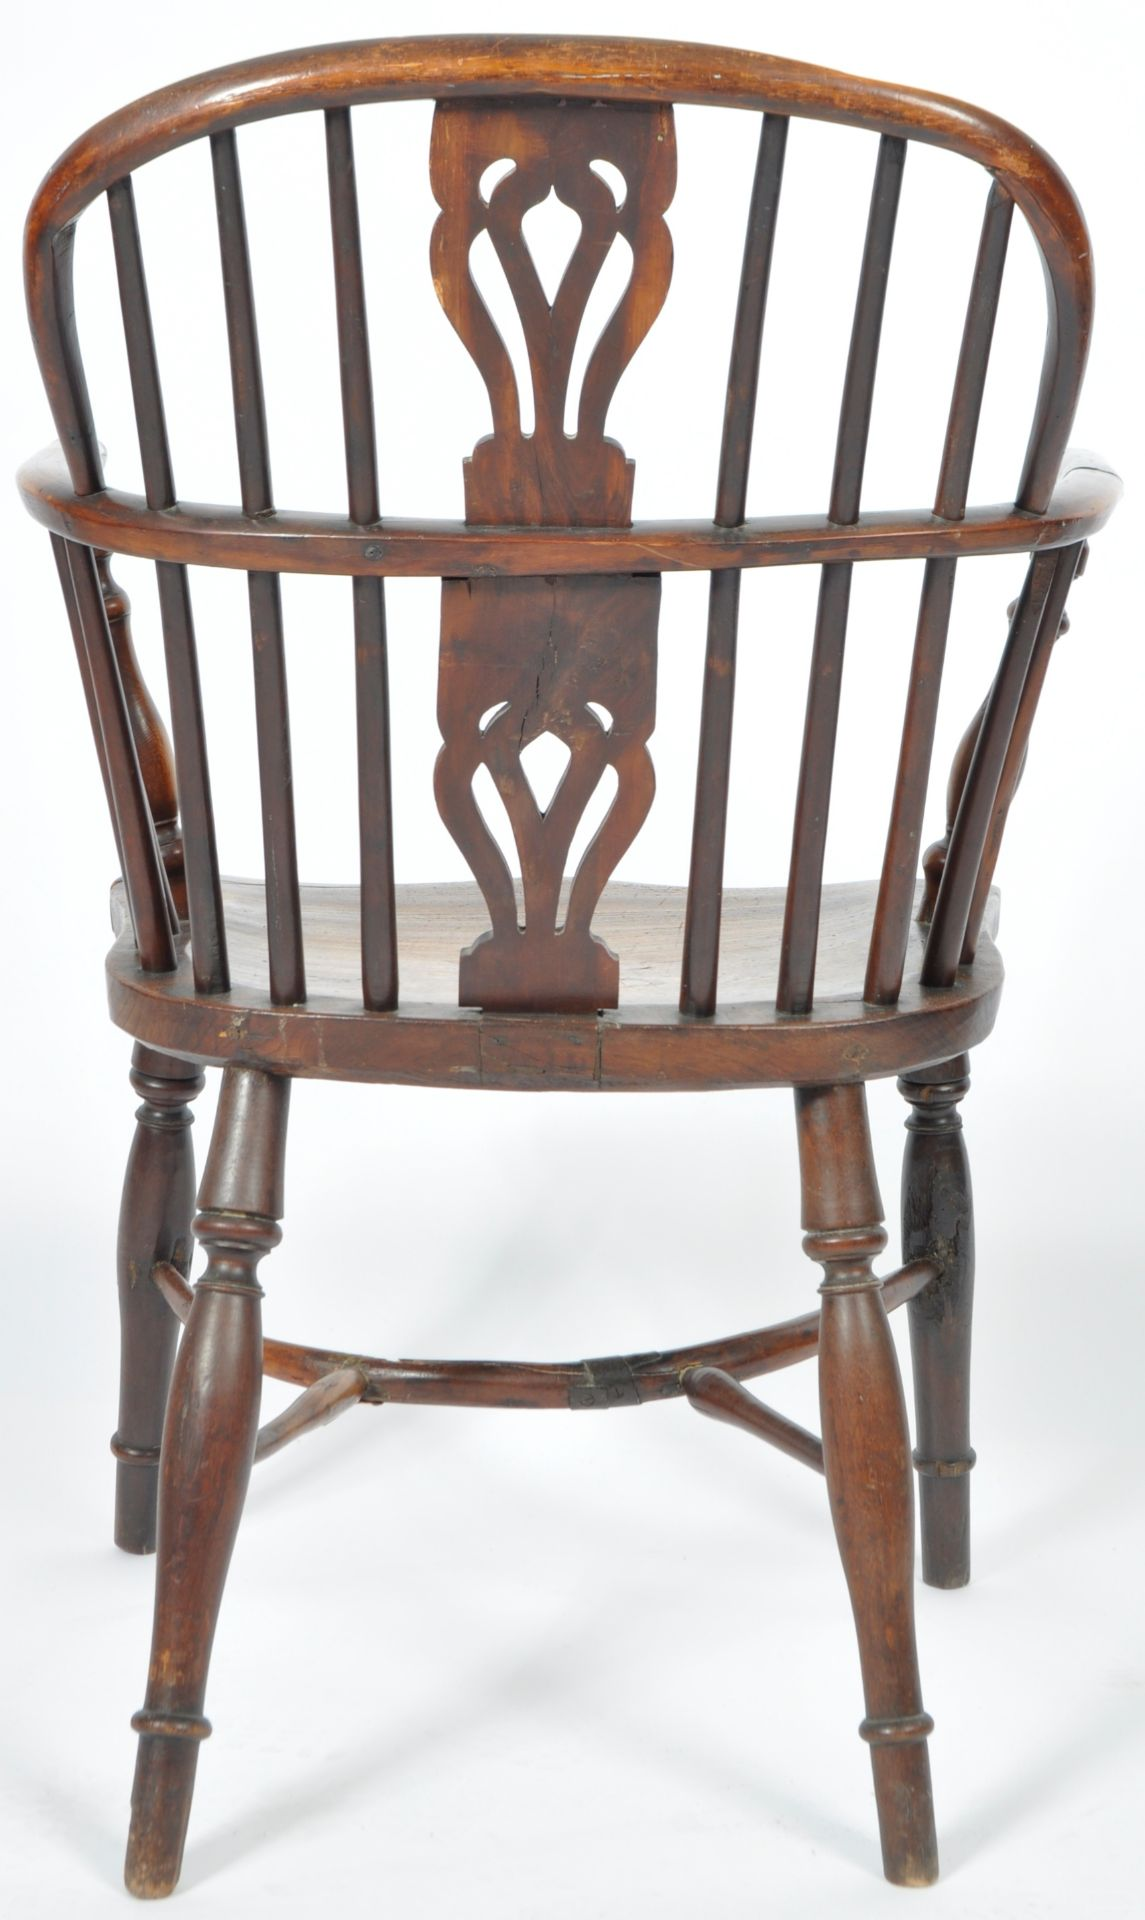 ANTIQUE GEORGIAN YEW AND ELM CRINOLINE WINDSOR ARMCHAIR - Image 7 of 9